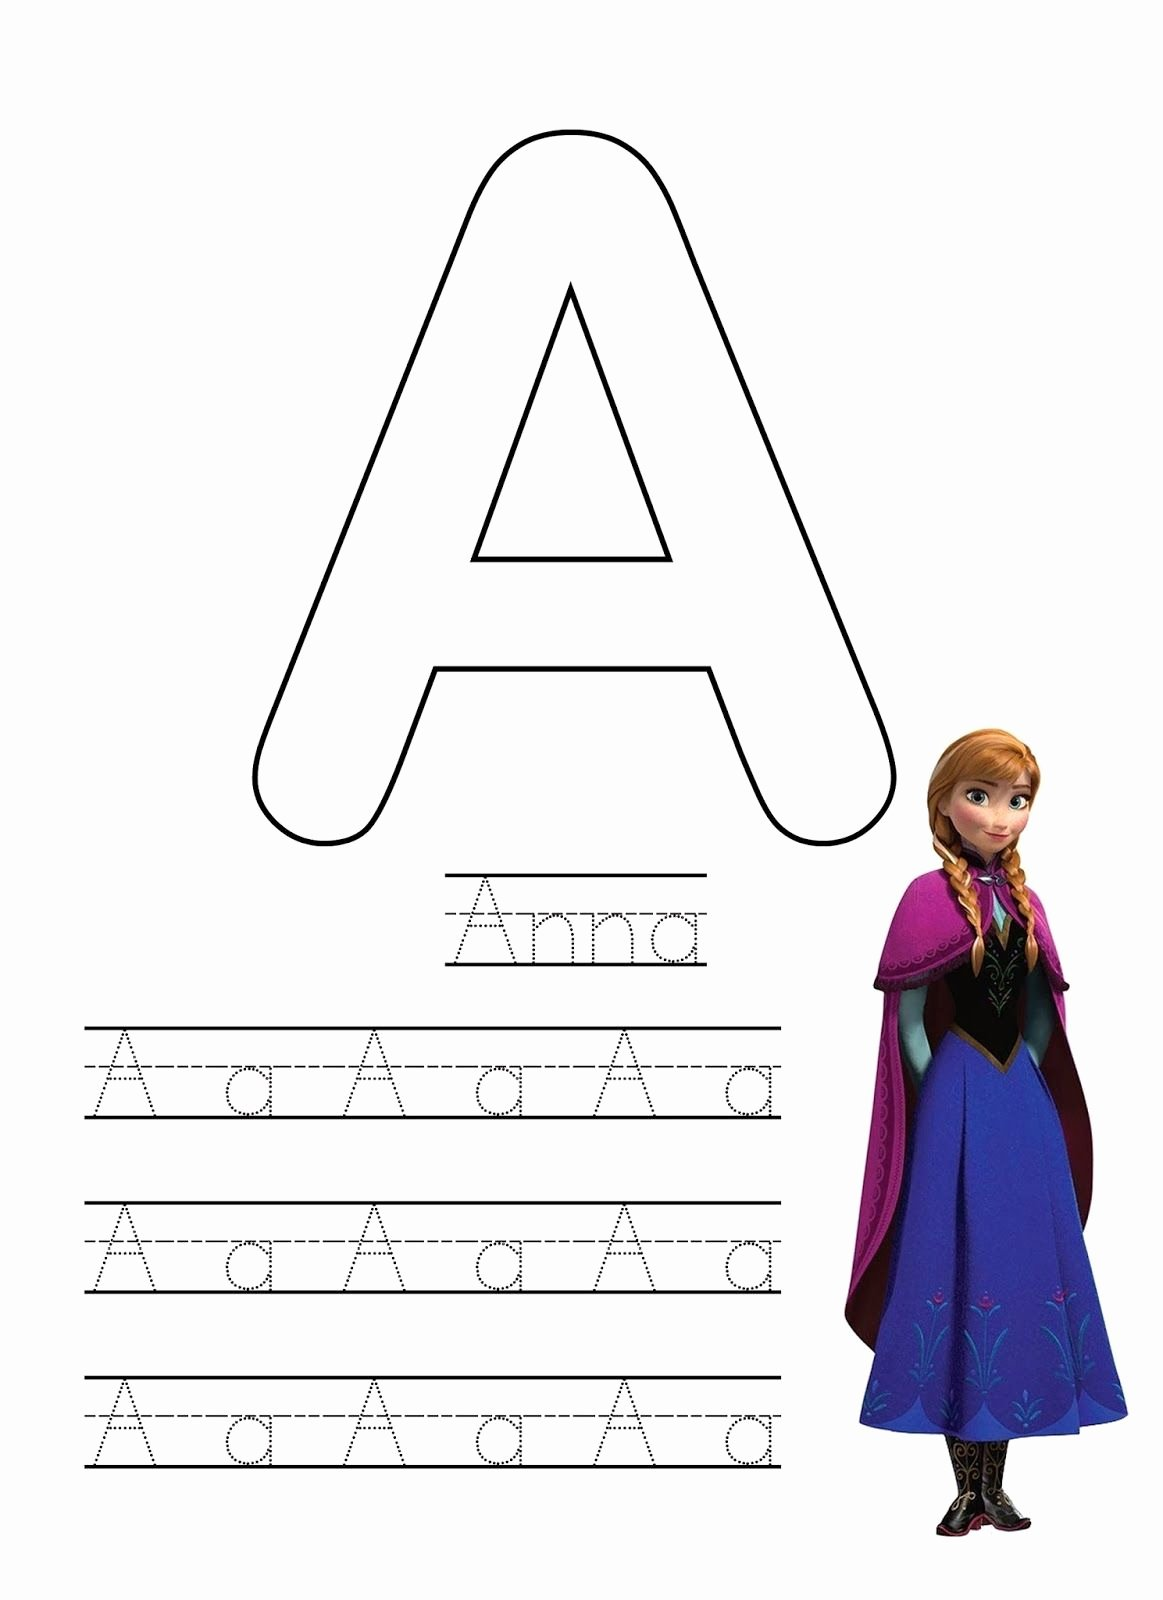 Frozen Worksheets for Preschoolers New I Make I Free Frozen Writing Worksheets